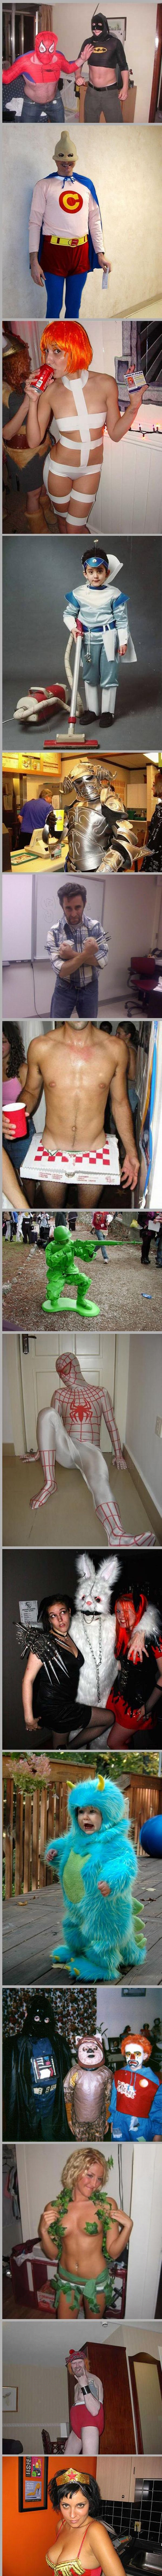 Crazy Halloween Costumes (26 pics)